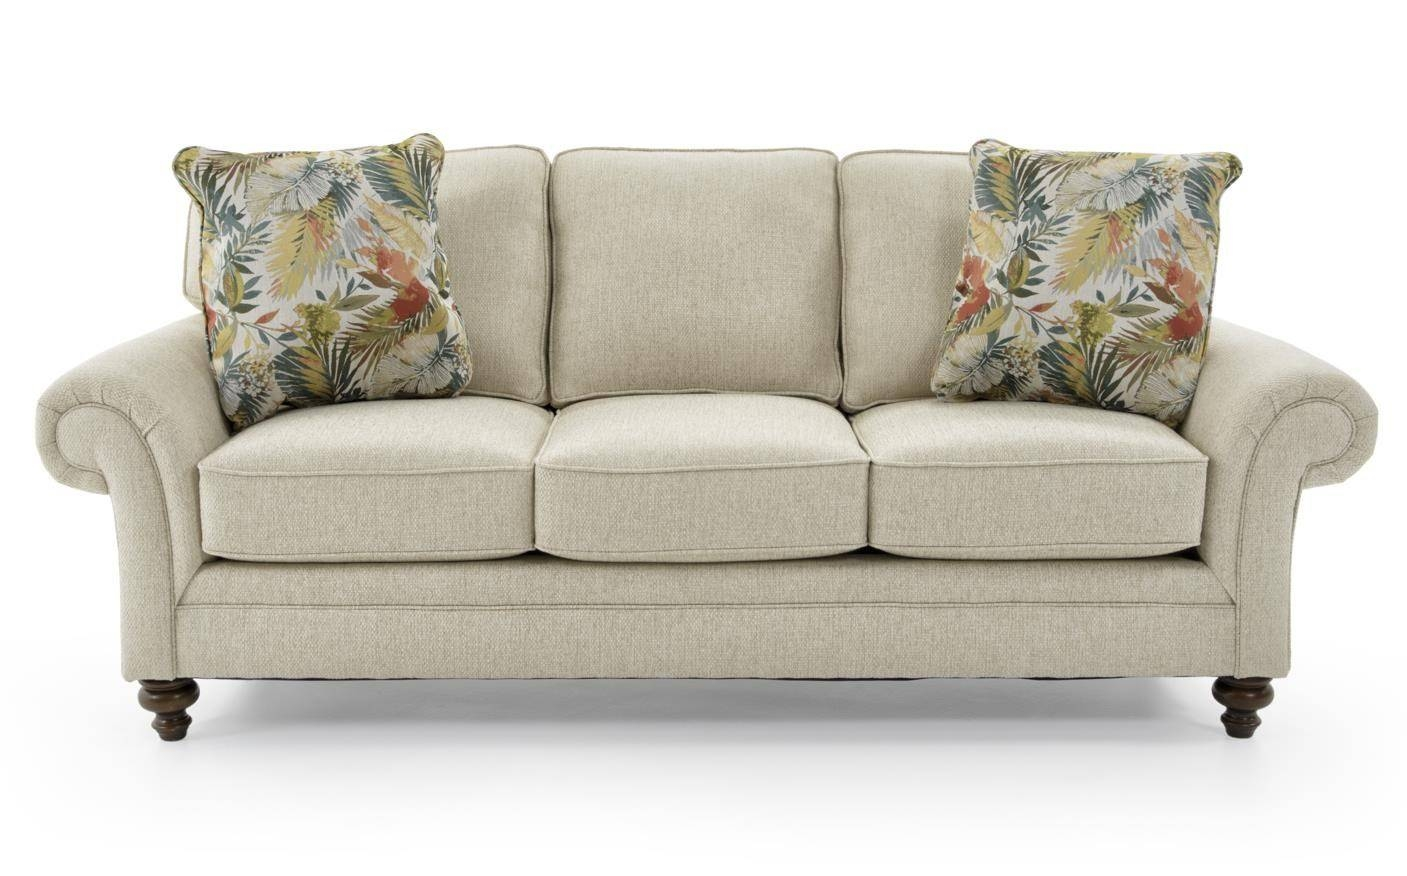 Broyhill Furniture At Baer's Furniture - Ft. Lauderdale, Ft. Myers in Broyhill Perspectives Sofas (Image 5 of 15)